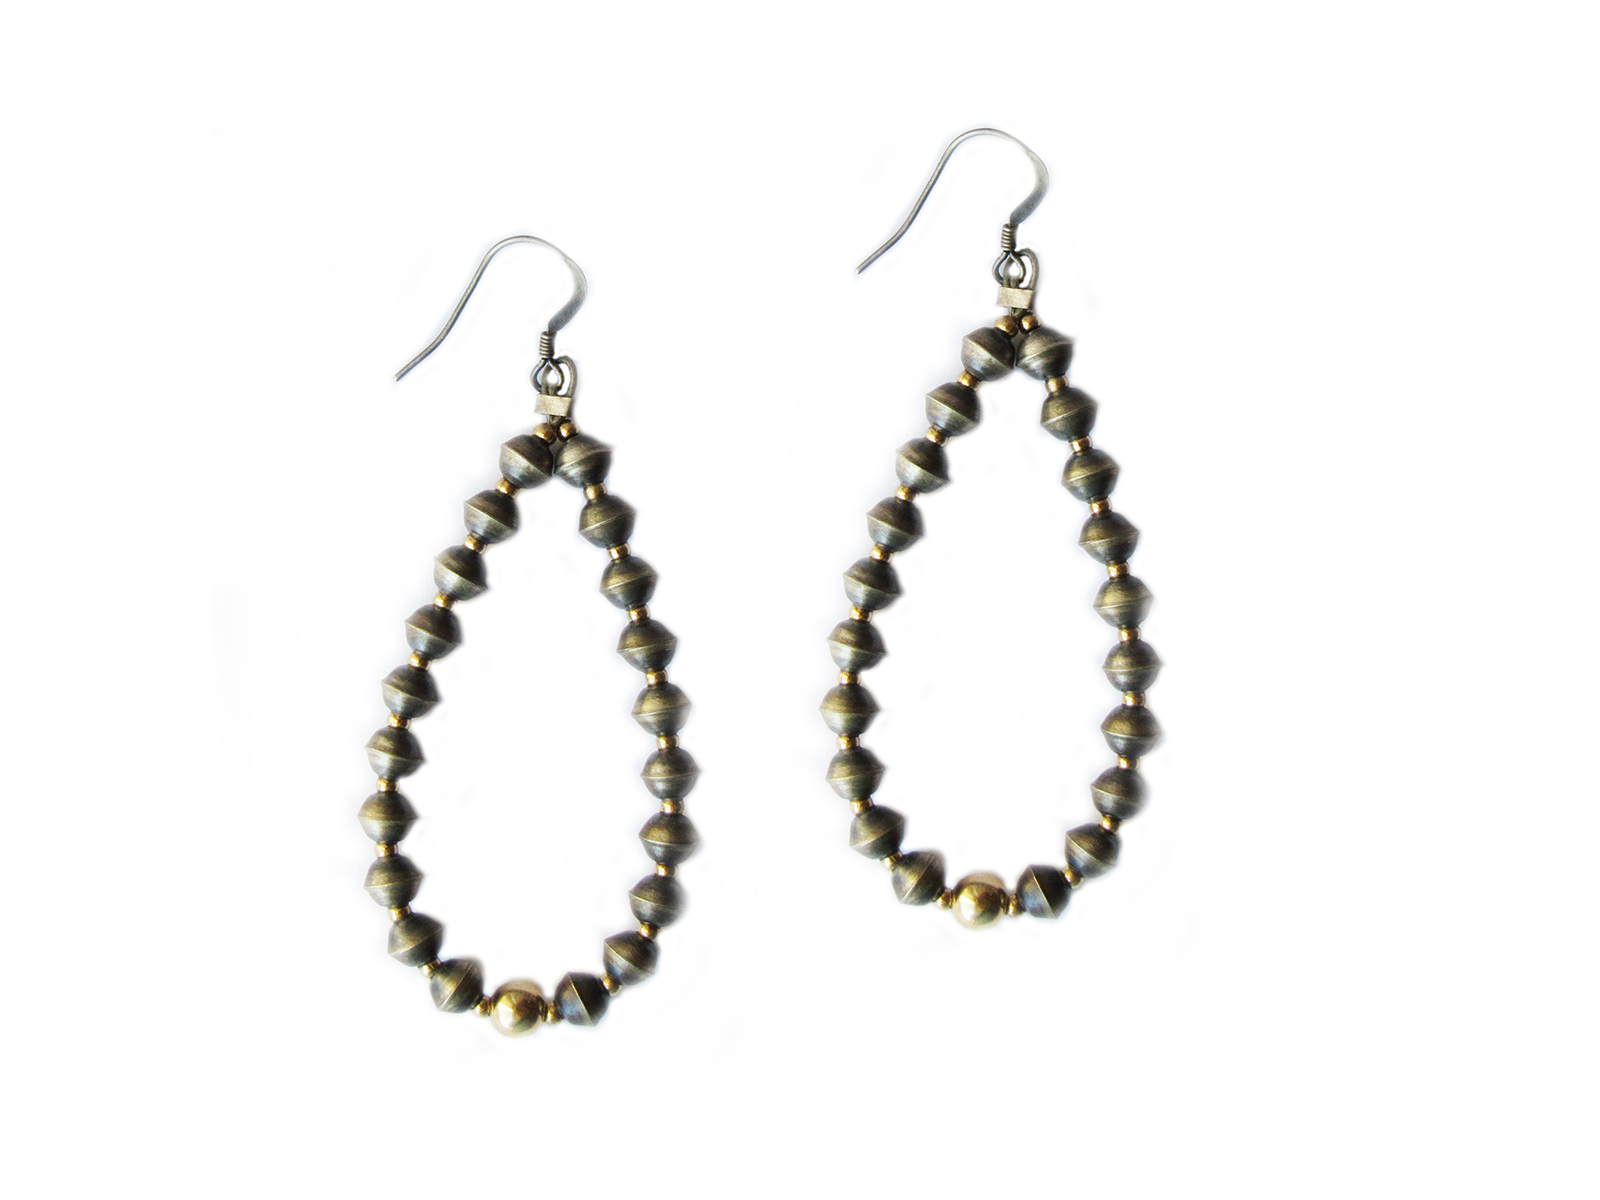 5mm Oxidized Sterling Silver Beaded Earrings